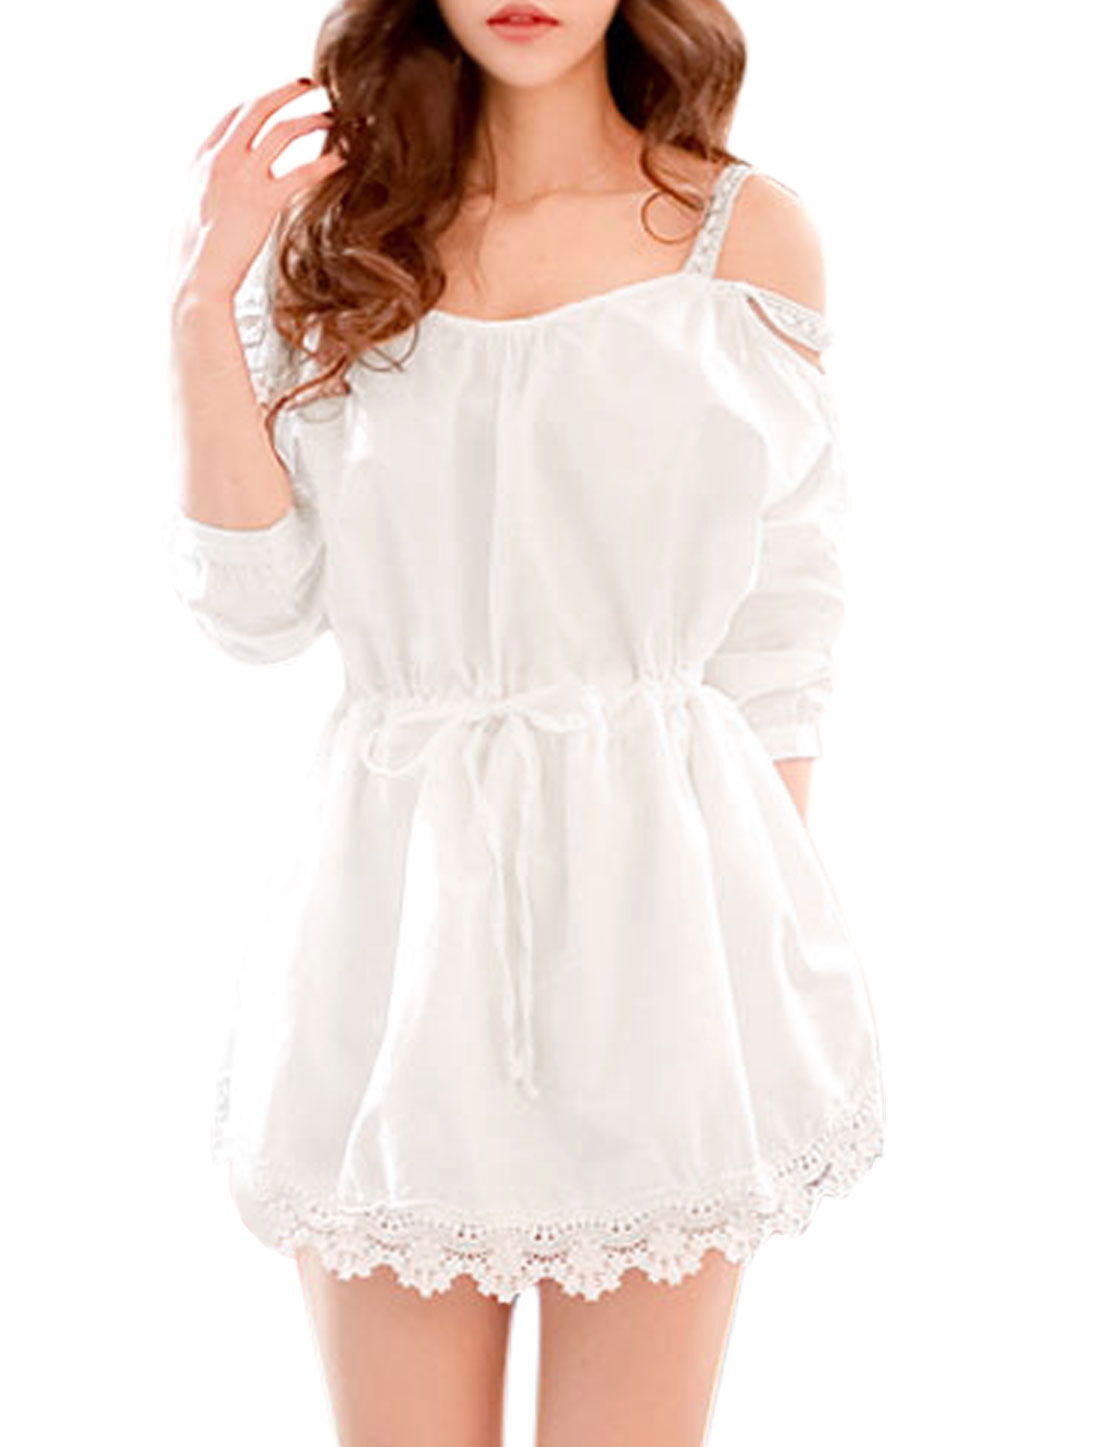 Women Scoop Neck Cut Out Shoulder Belted A Line Dress White S